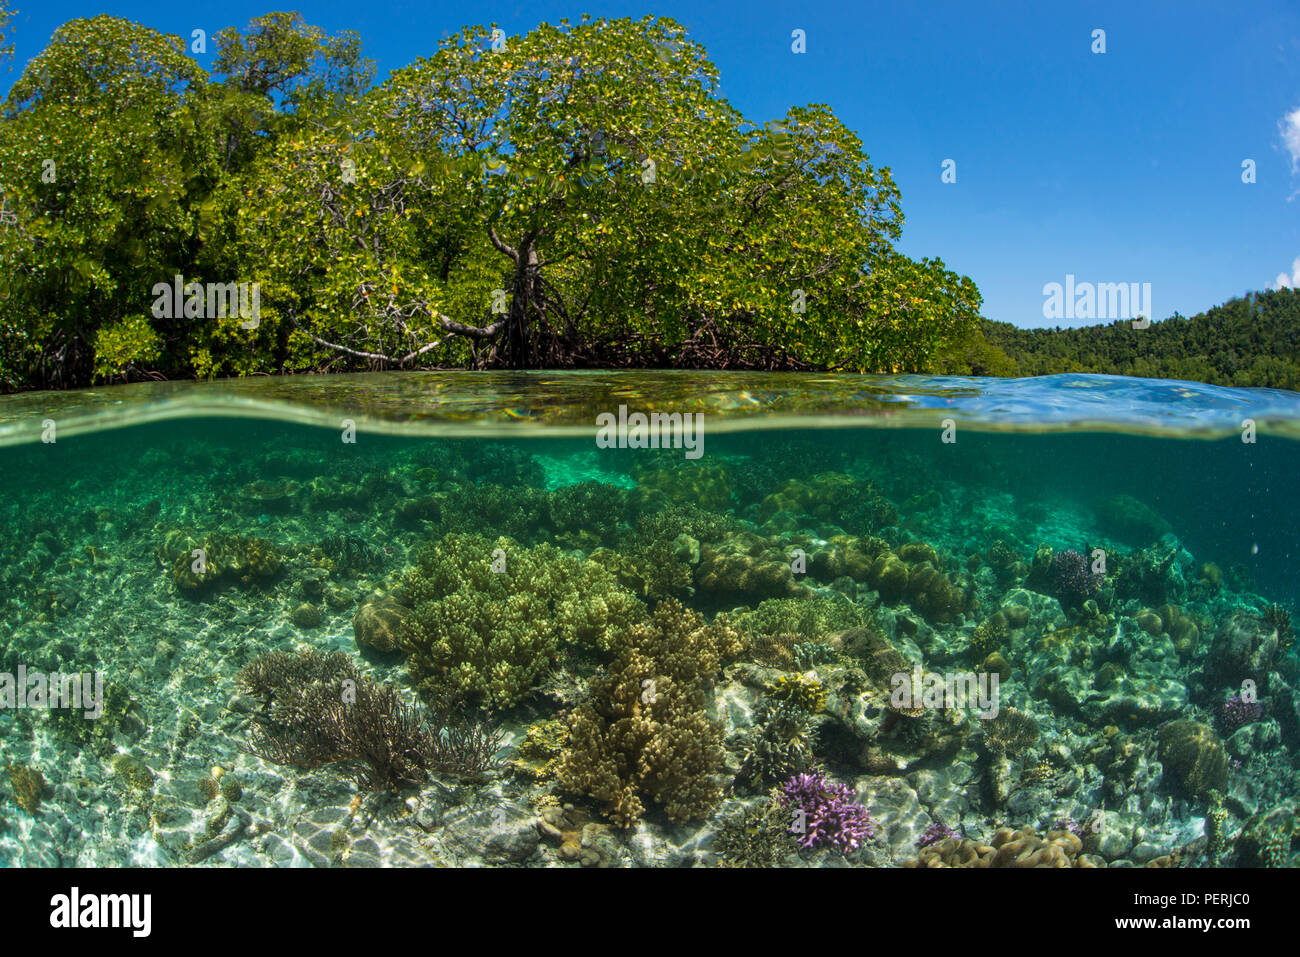 A split-level underwater photo of coral reef in clear blue water, with mangrove trees and blue sky above water, at Yangefo, Waigeo, Raja Ampat Marine Stock Photo